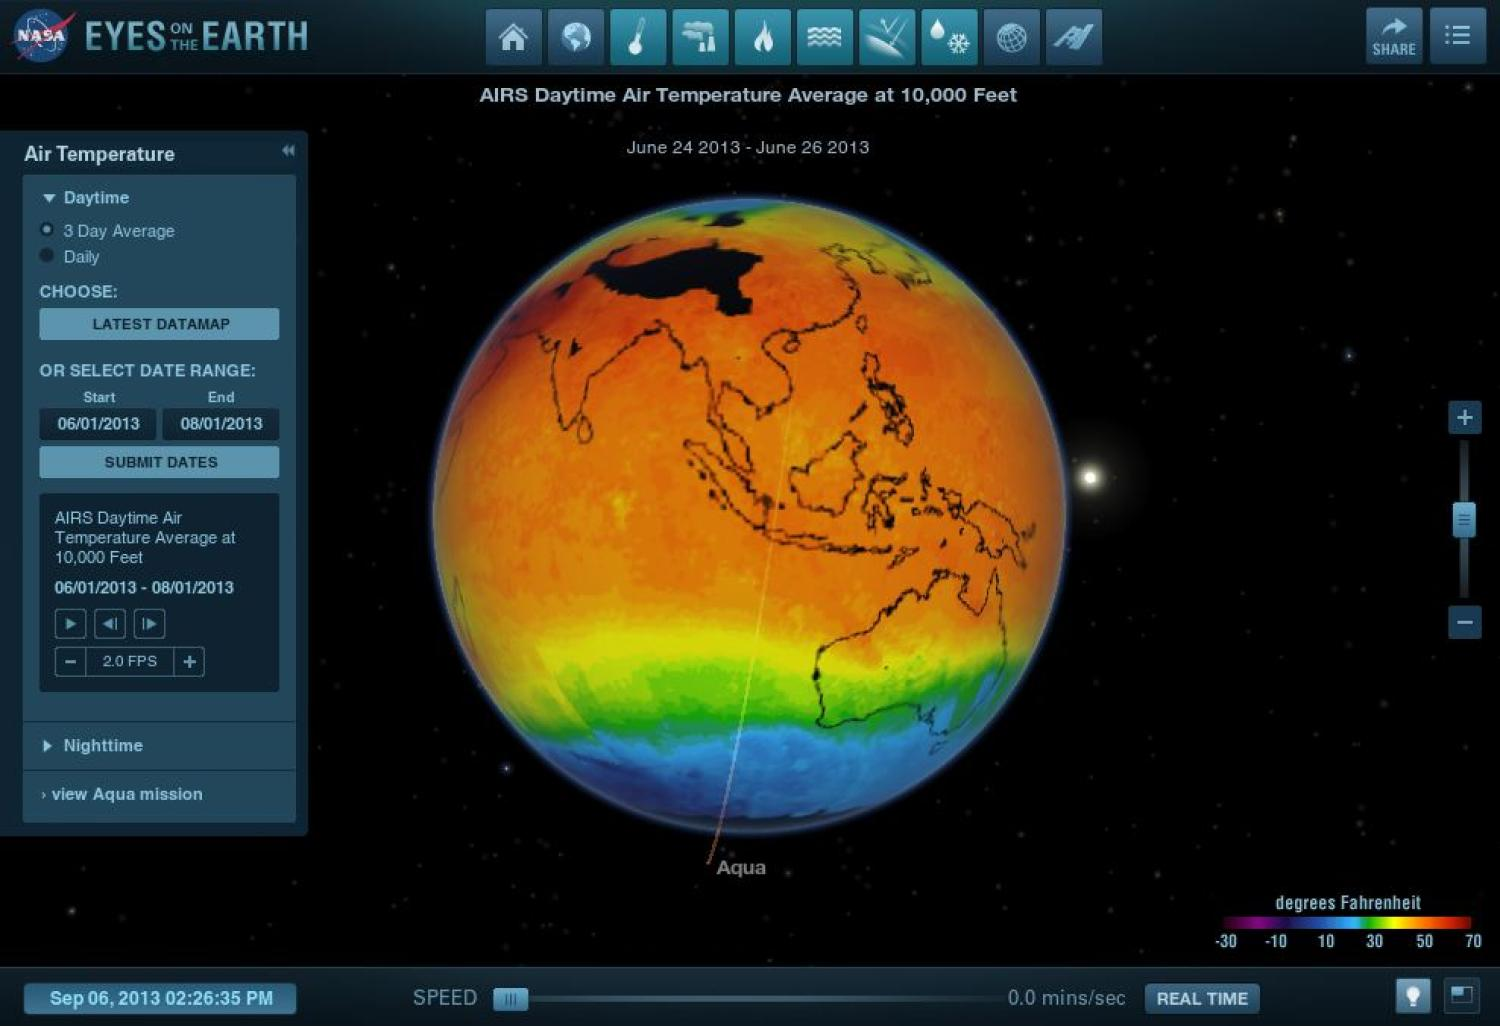 Screen capture of NASA's Eyes on Earth interactive